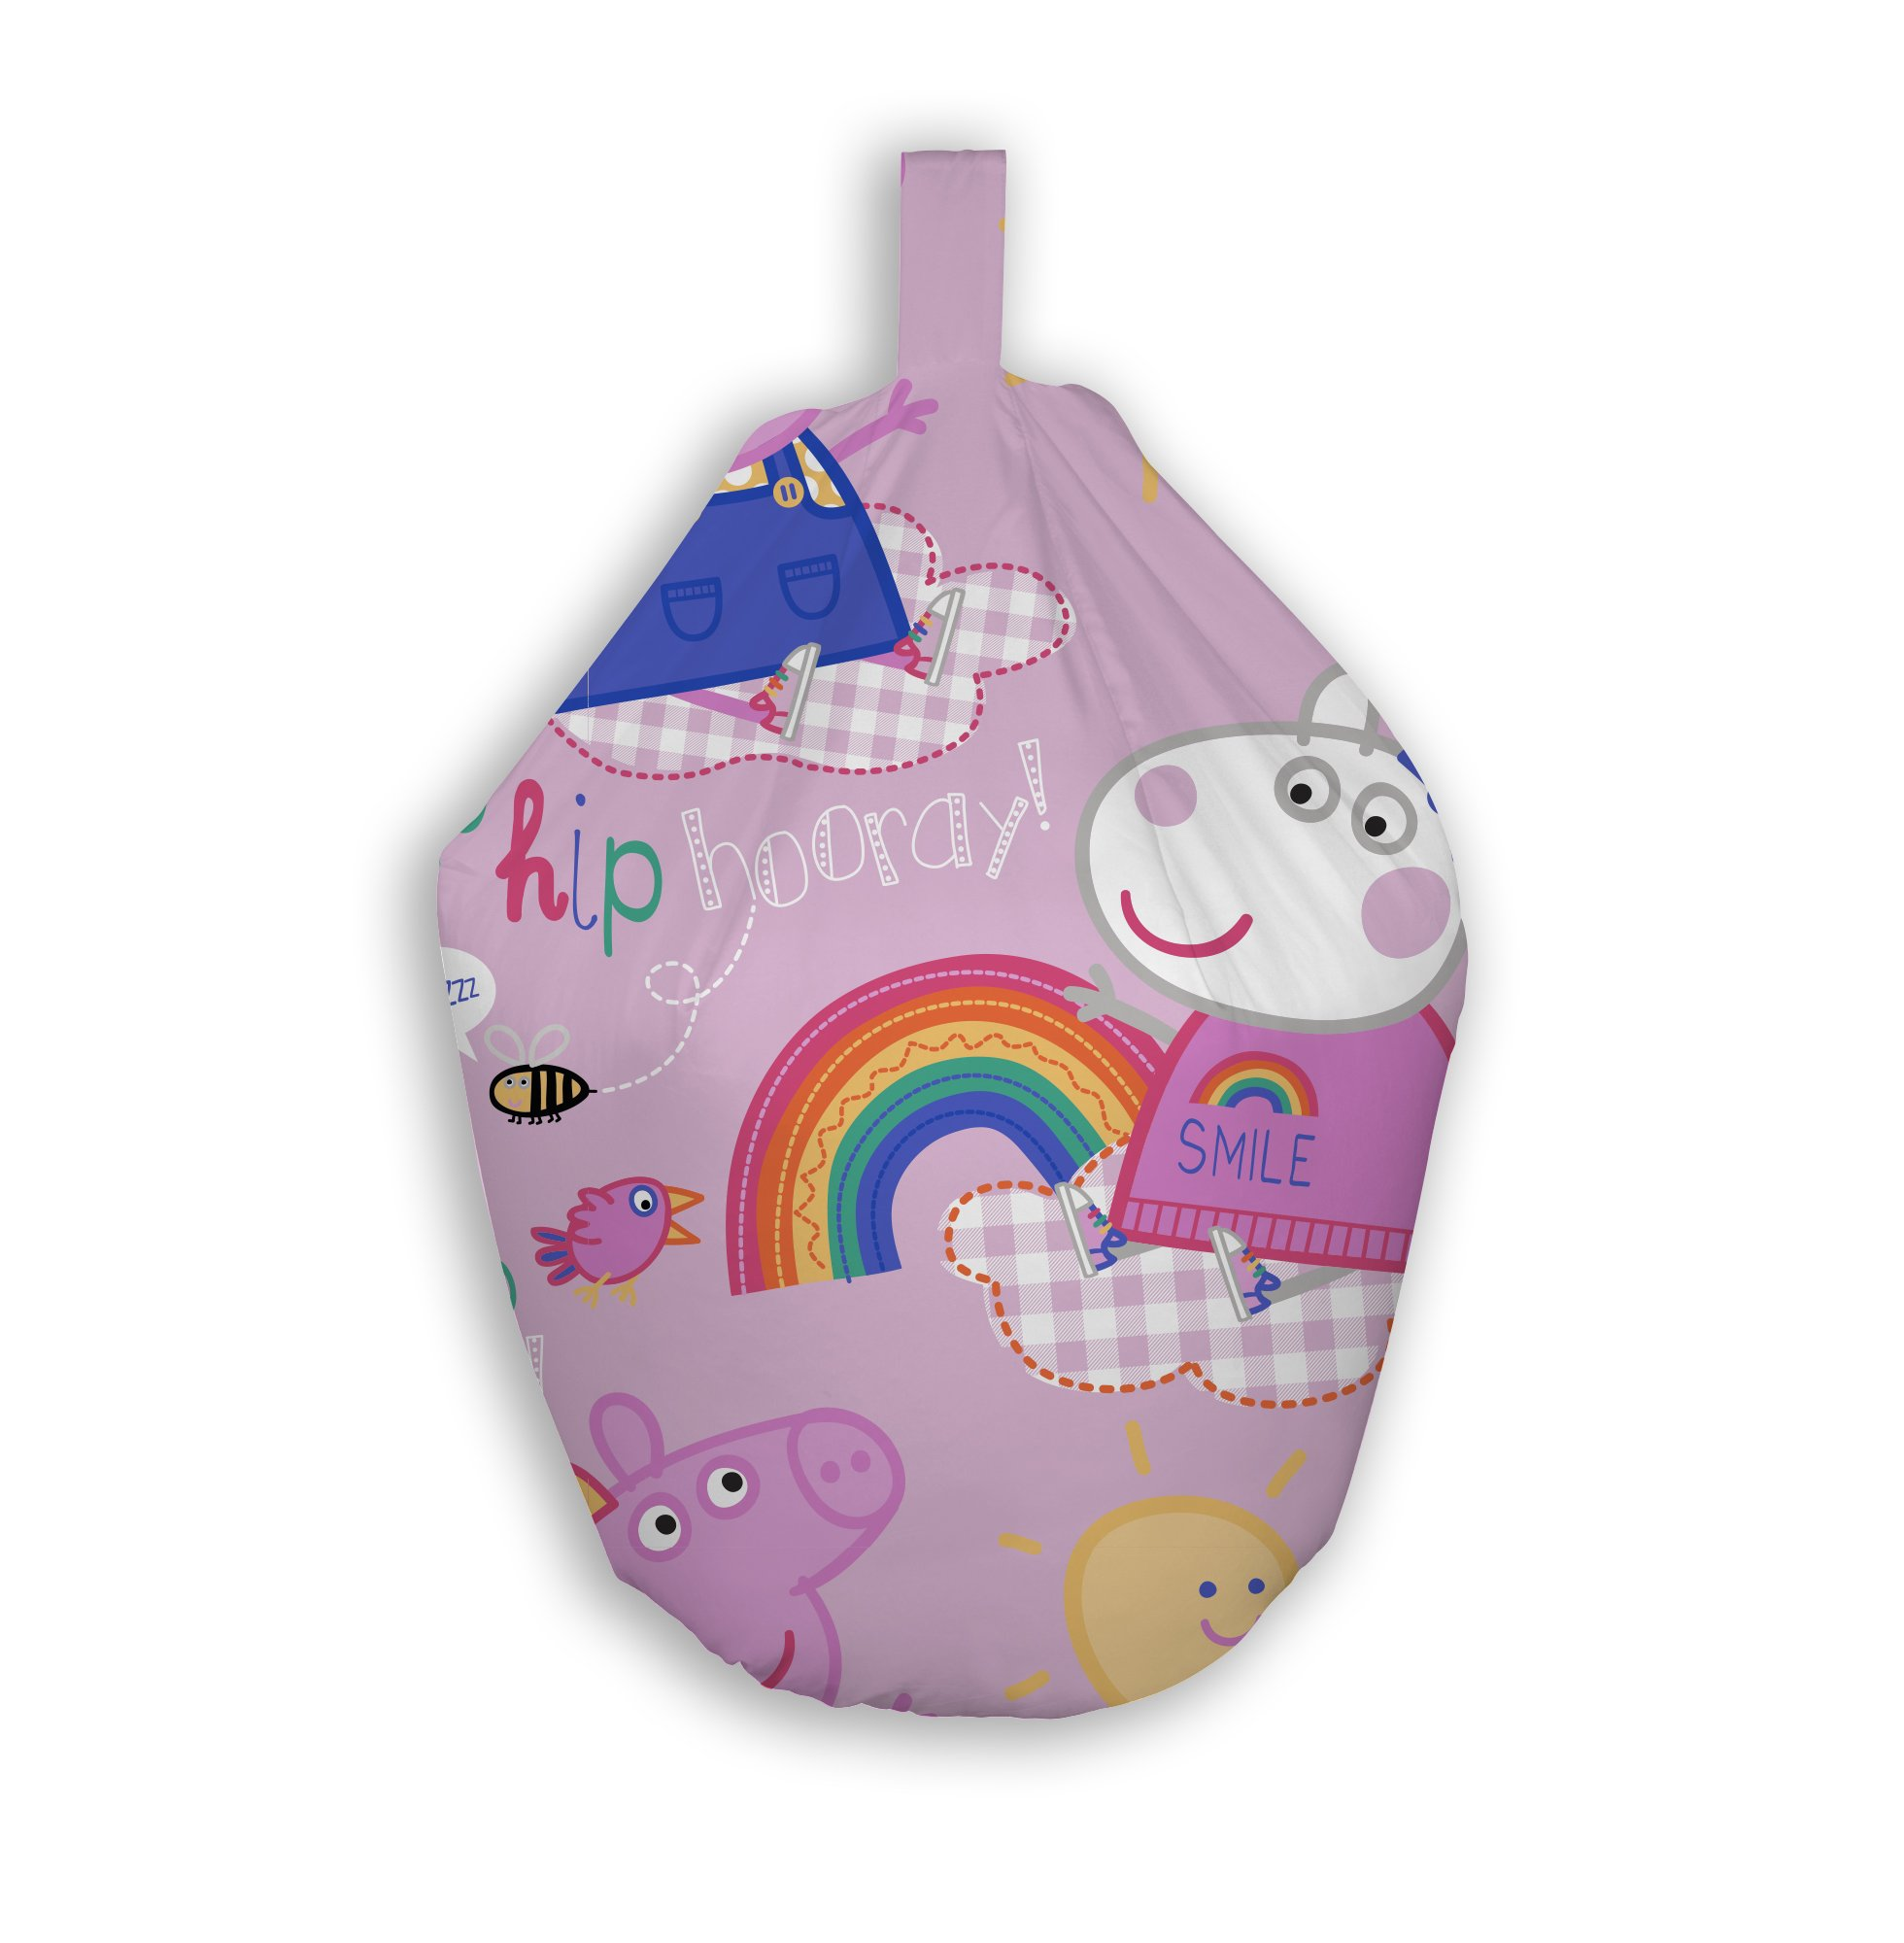 Peppa Pig Hooray Bean Bag Chair Officially Licensed Design Fabric